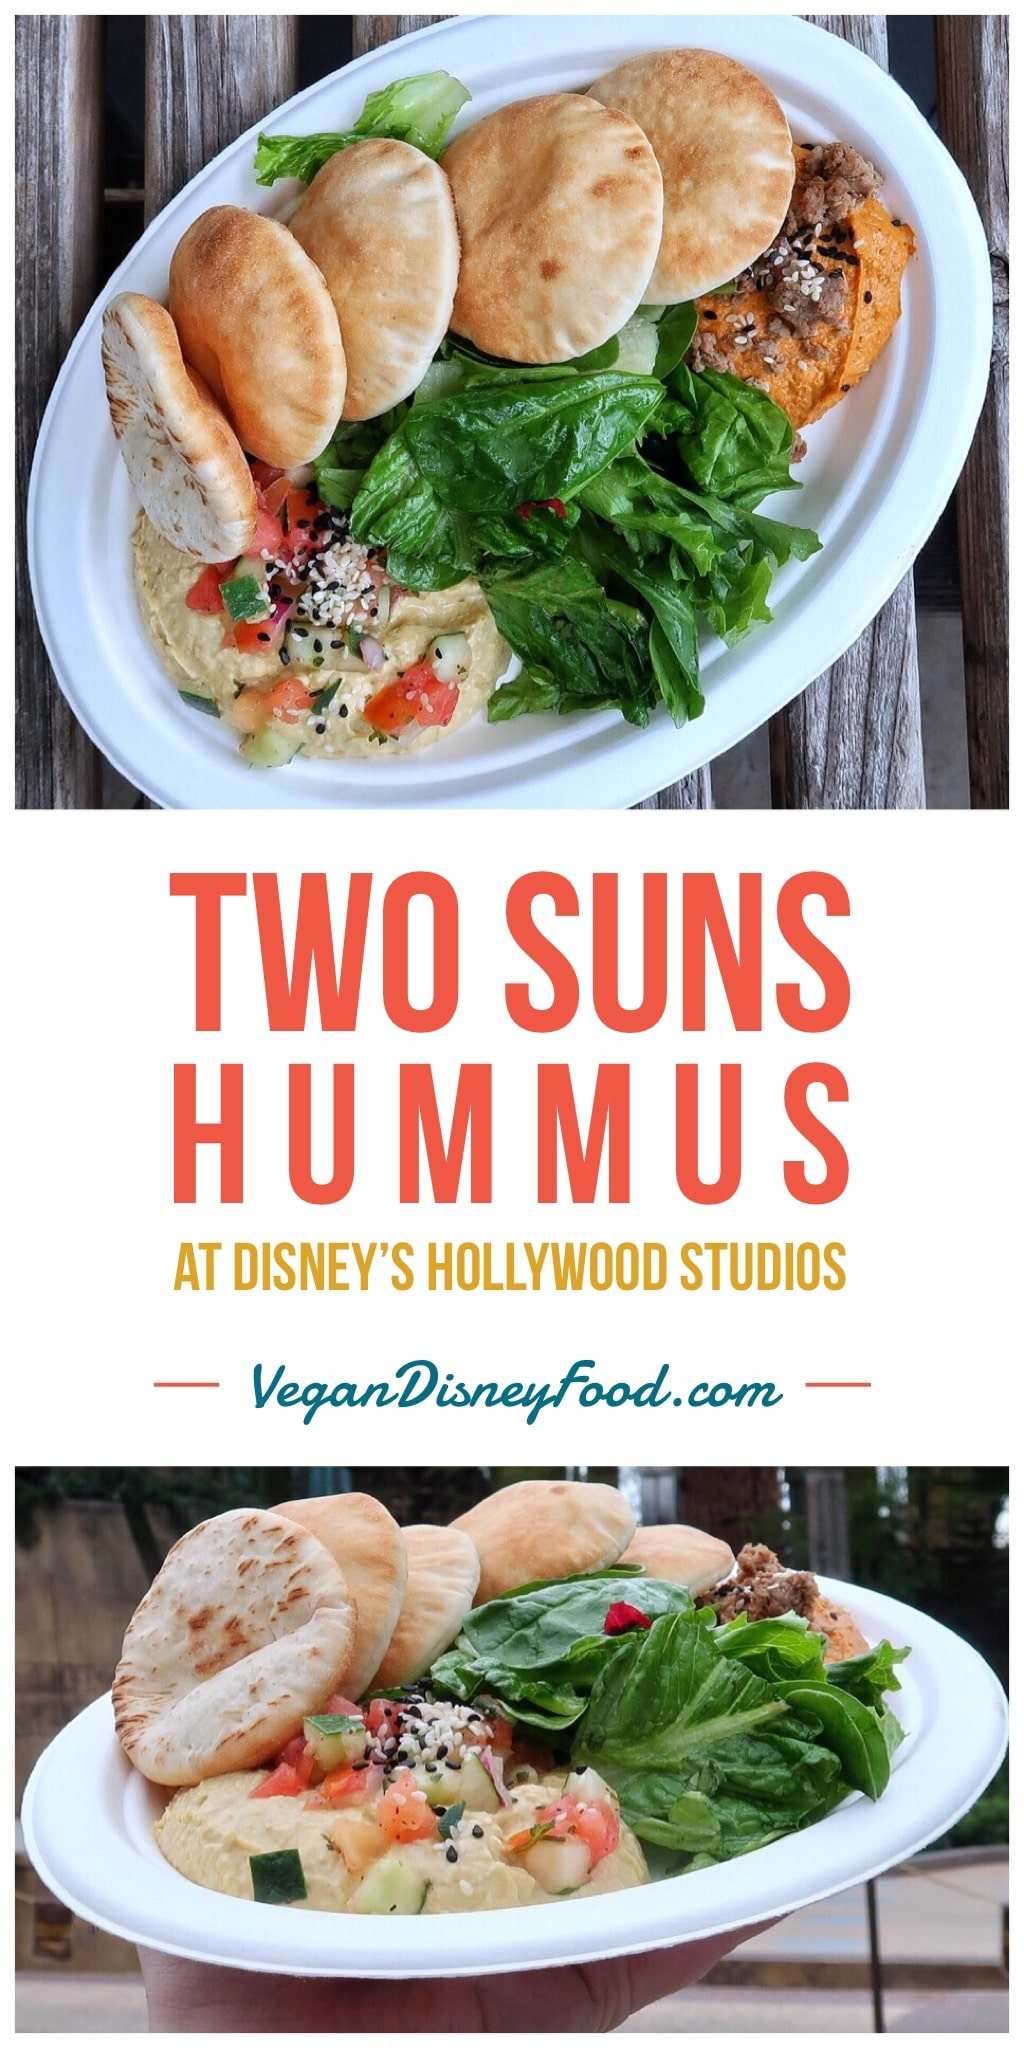 Vegan Two Suns Hummus at Backlot Express in Disney's Hollywood Studios at Walt Disney World